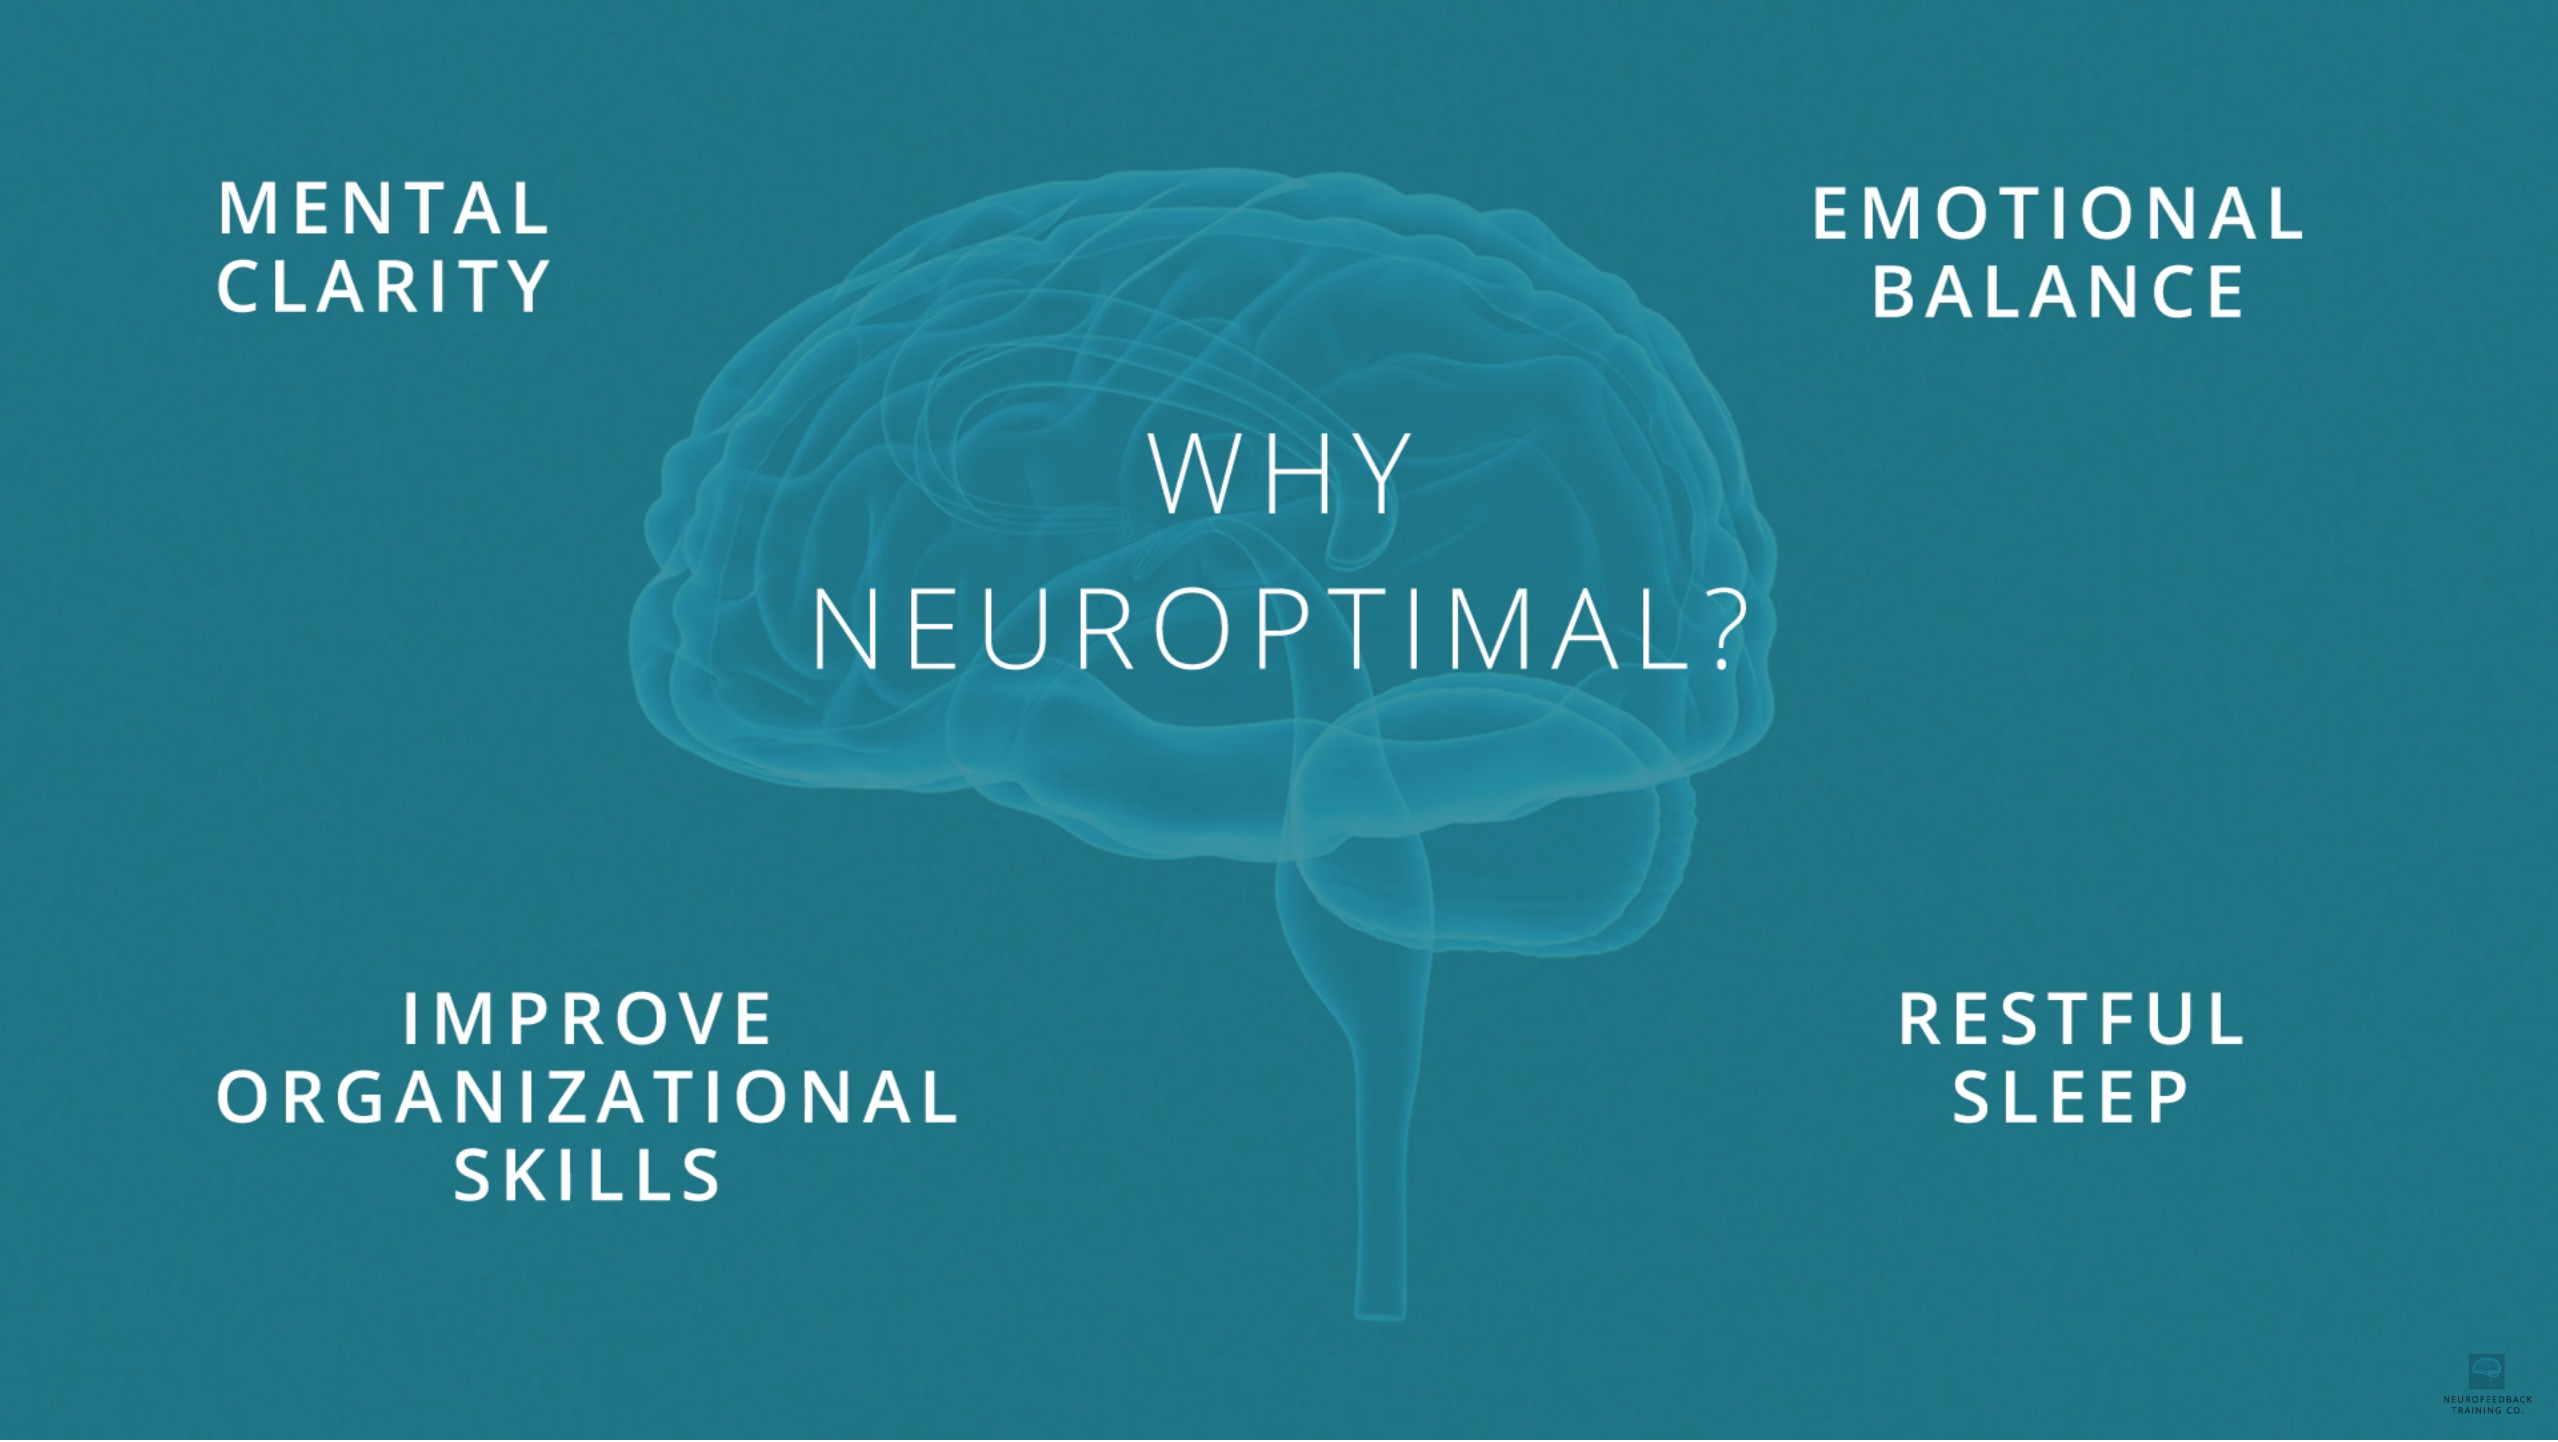 why-neuroptimal-and-what-are-the-benefits-neurofeedback-training-co